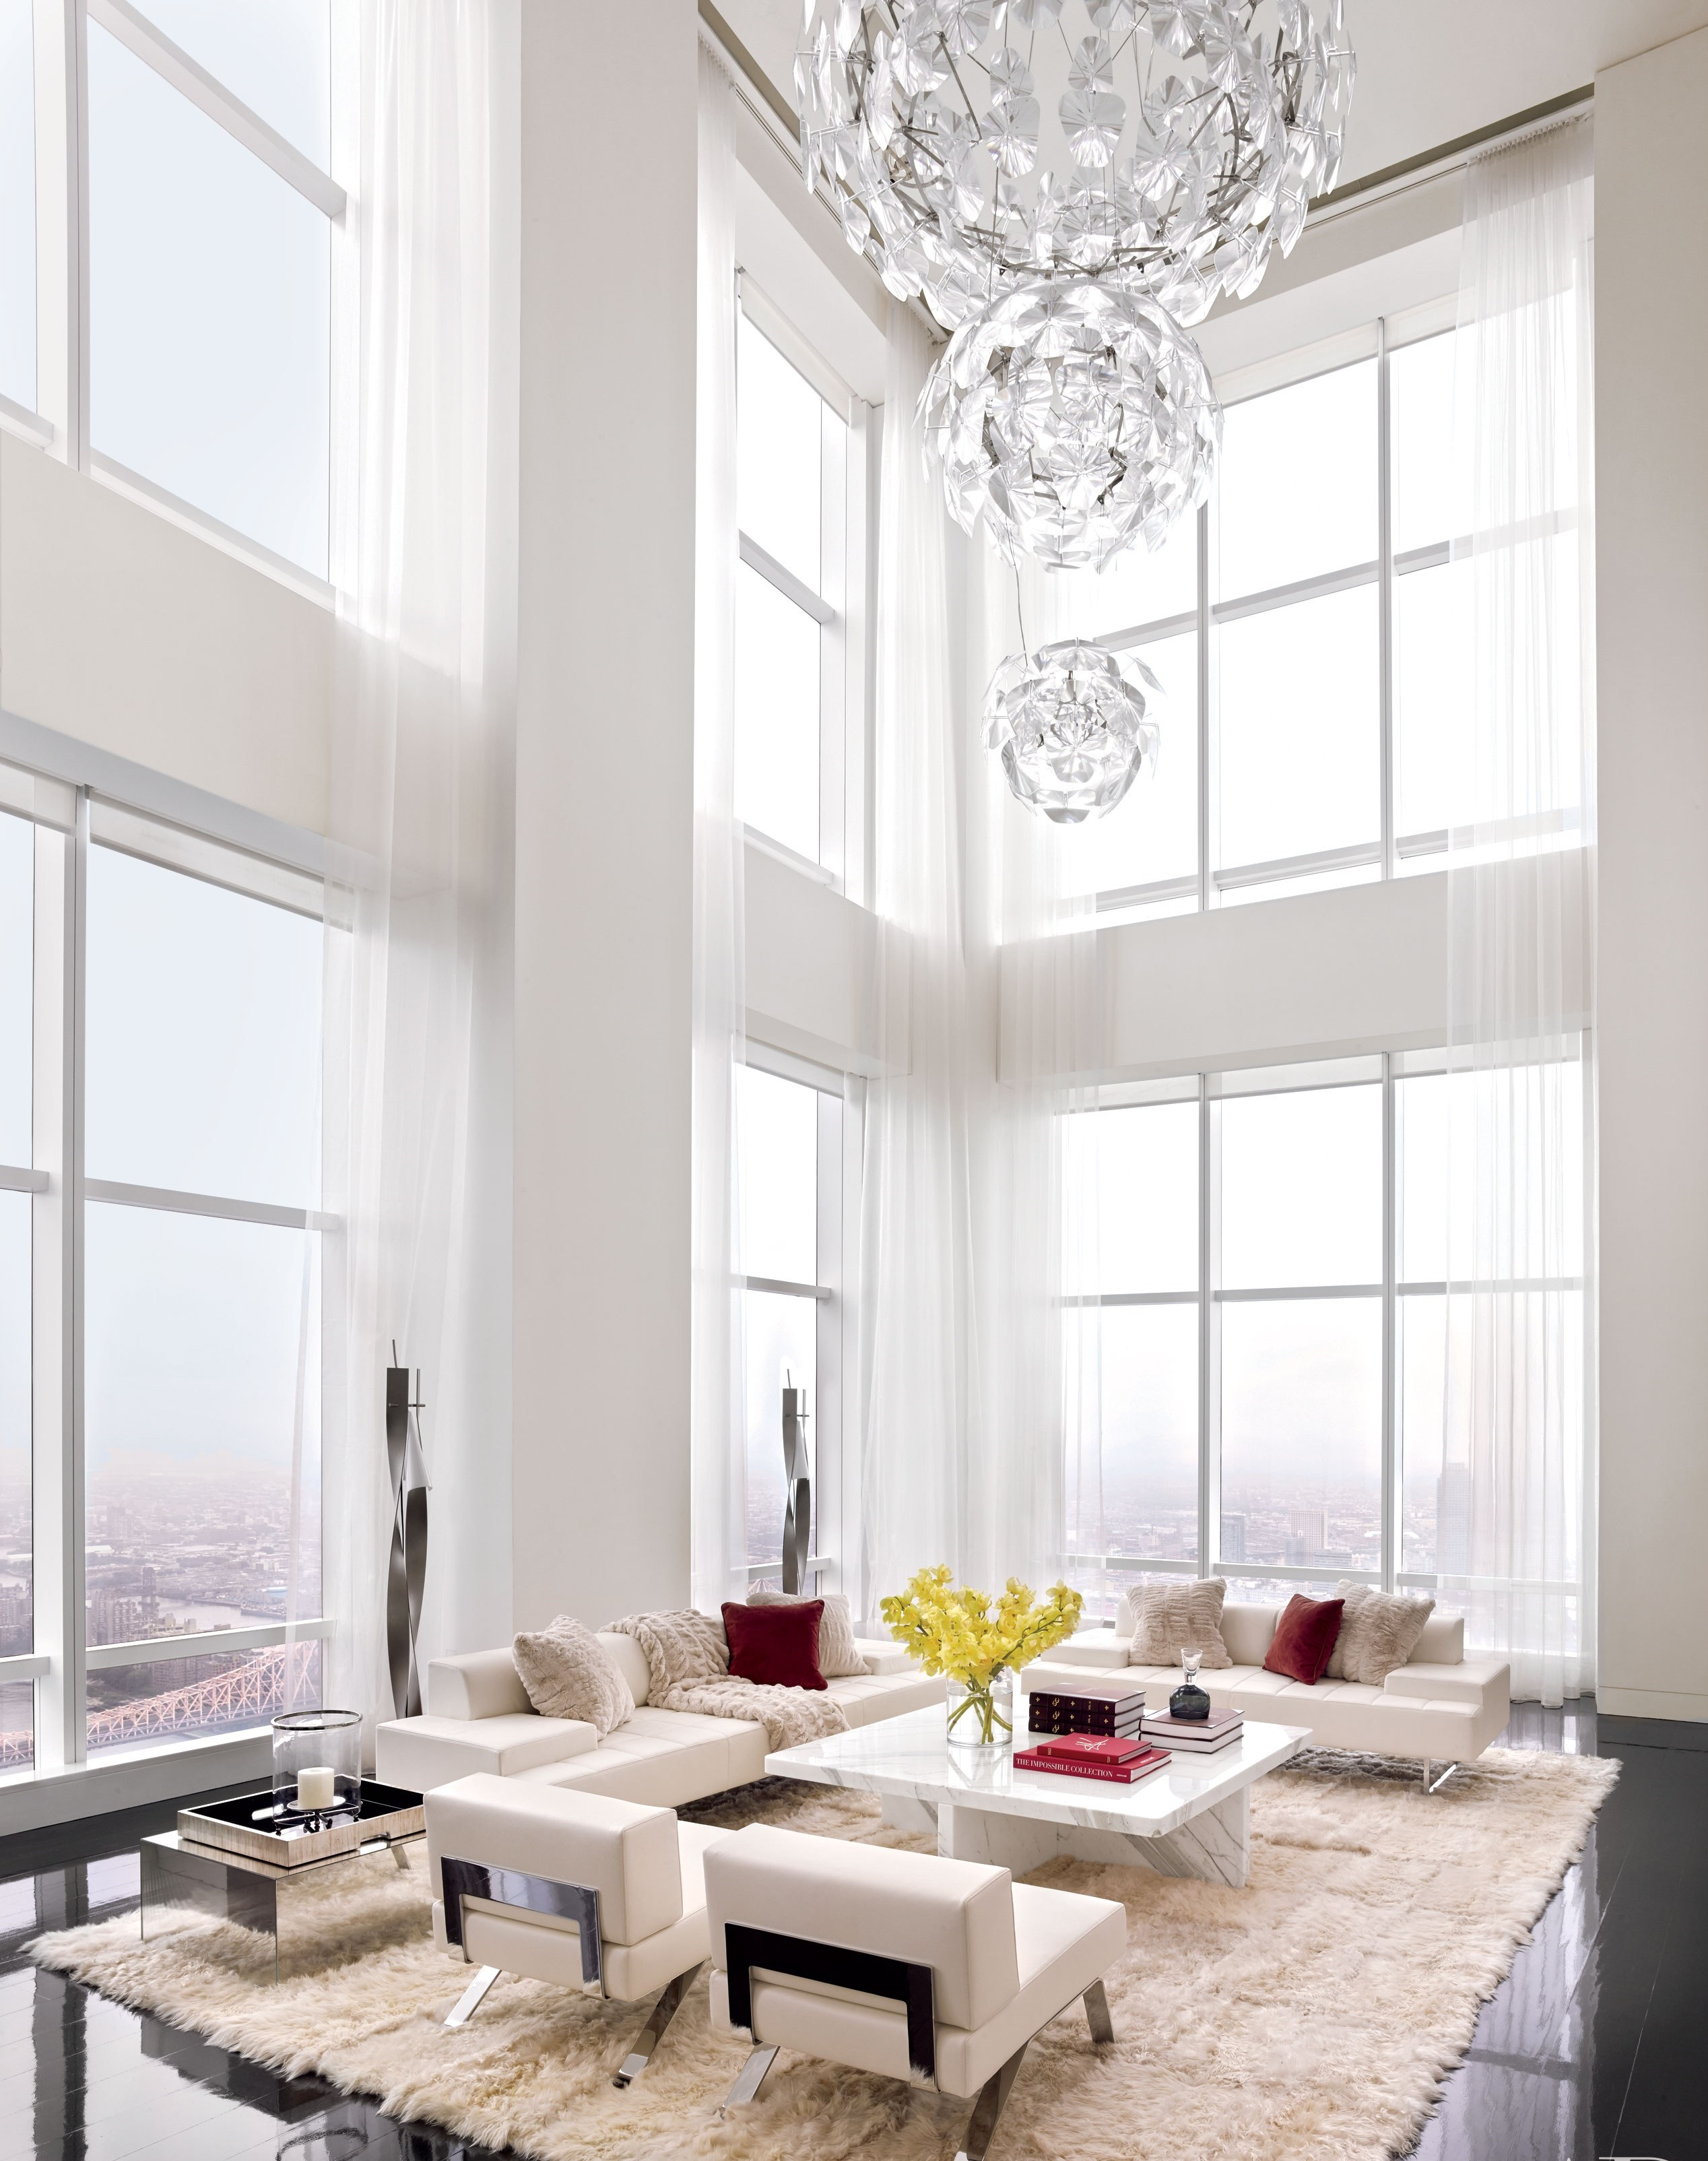 Top 8 Manhattan Dream Living Rooms To Inspire You